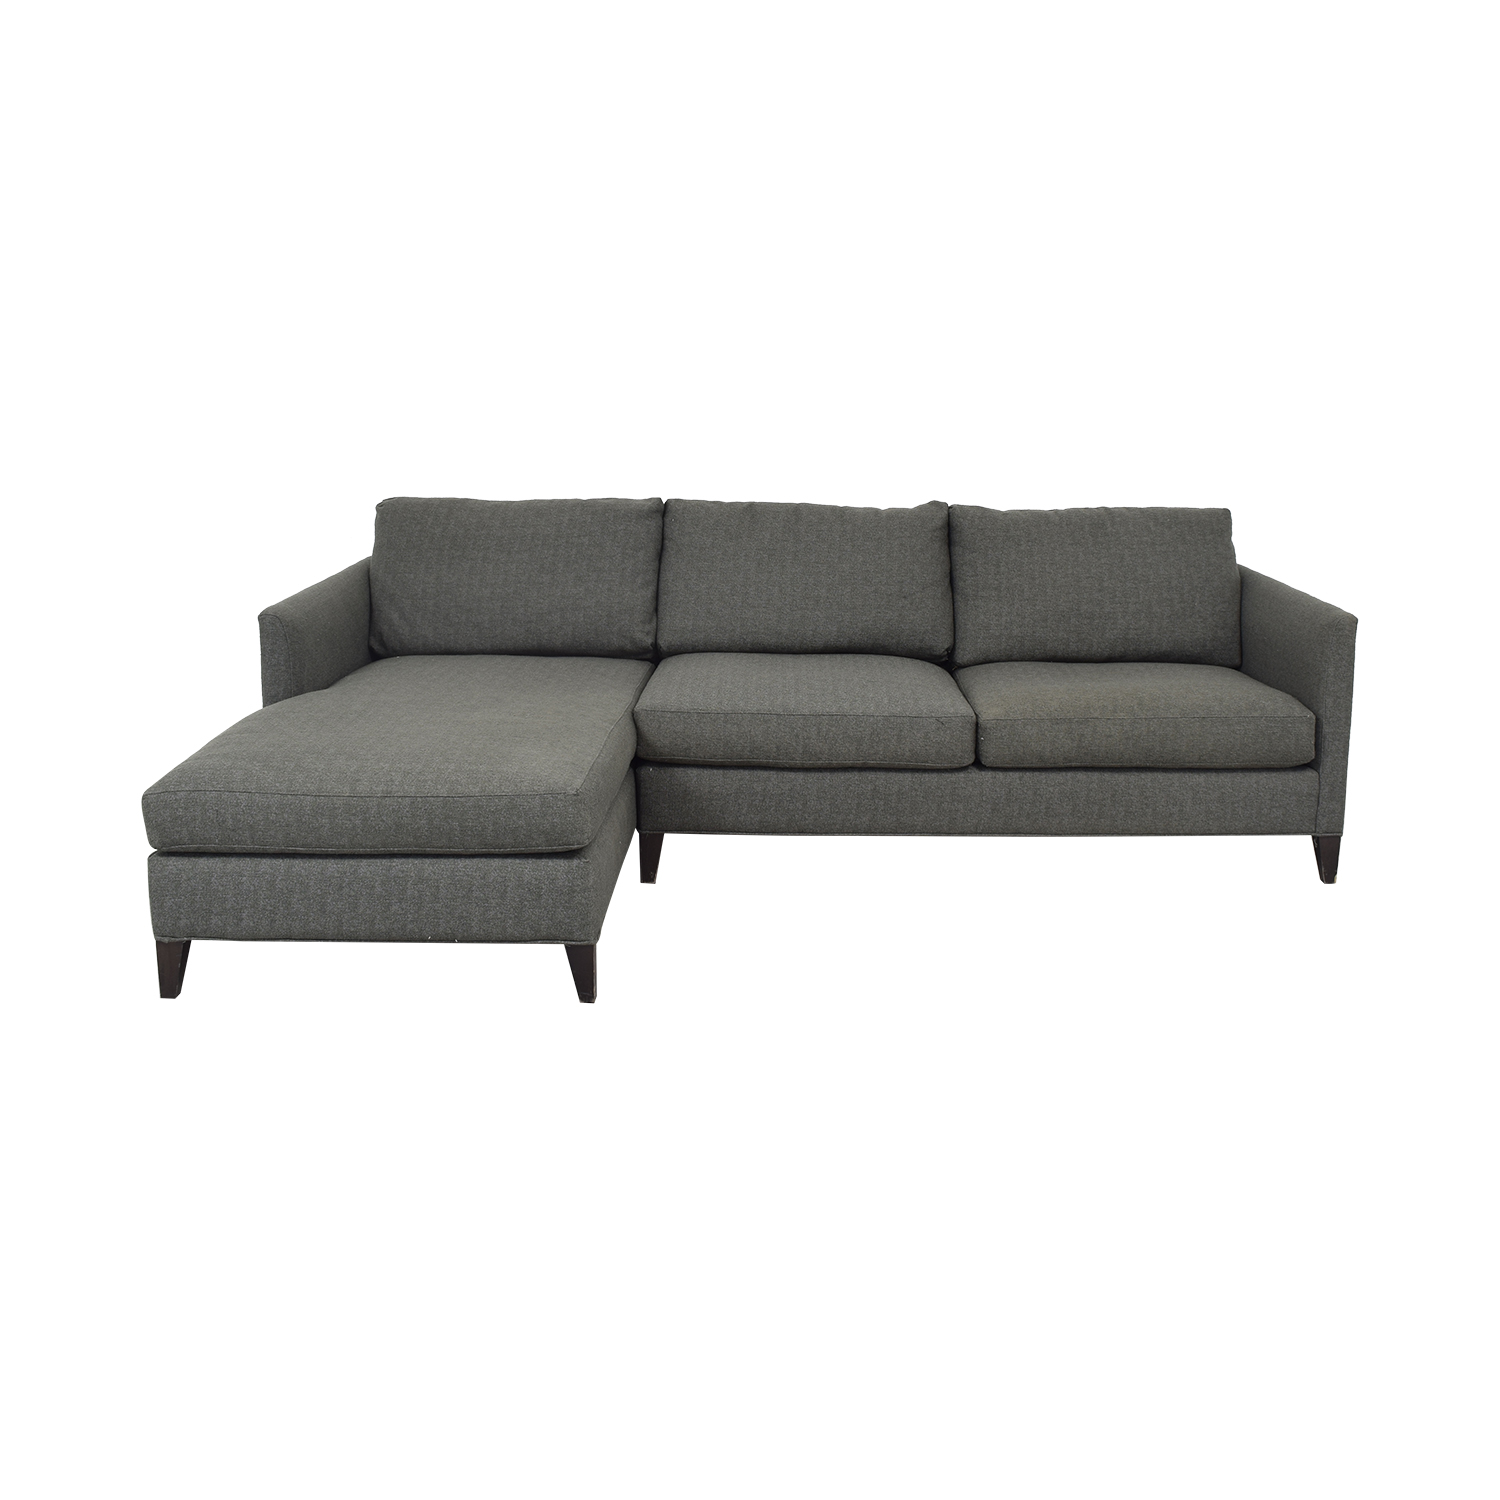 buy Crate & Barrel Chaise Sectional Sofa Crate & Barrel Sofas